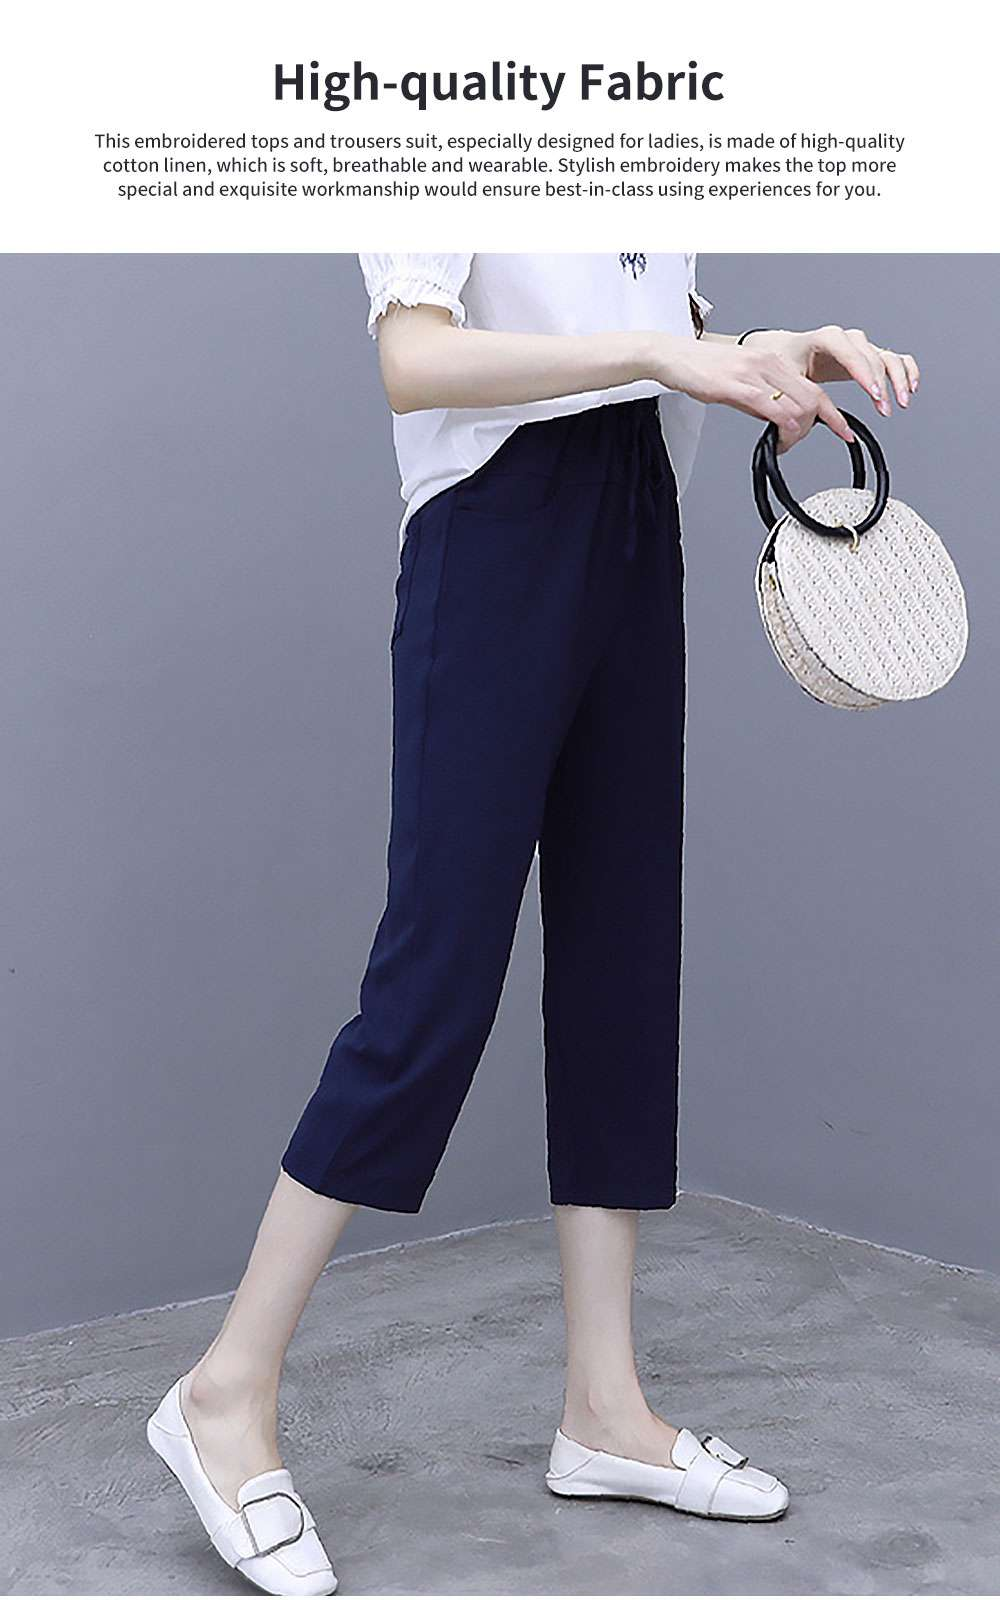 Elegant Casual Summer Lady Embroidered Tops Trousers Suit Breathable Cotton Linen Atmosphere Feet Ninth Pants for Women 1